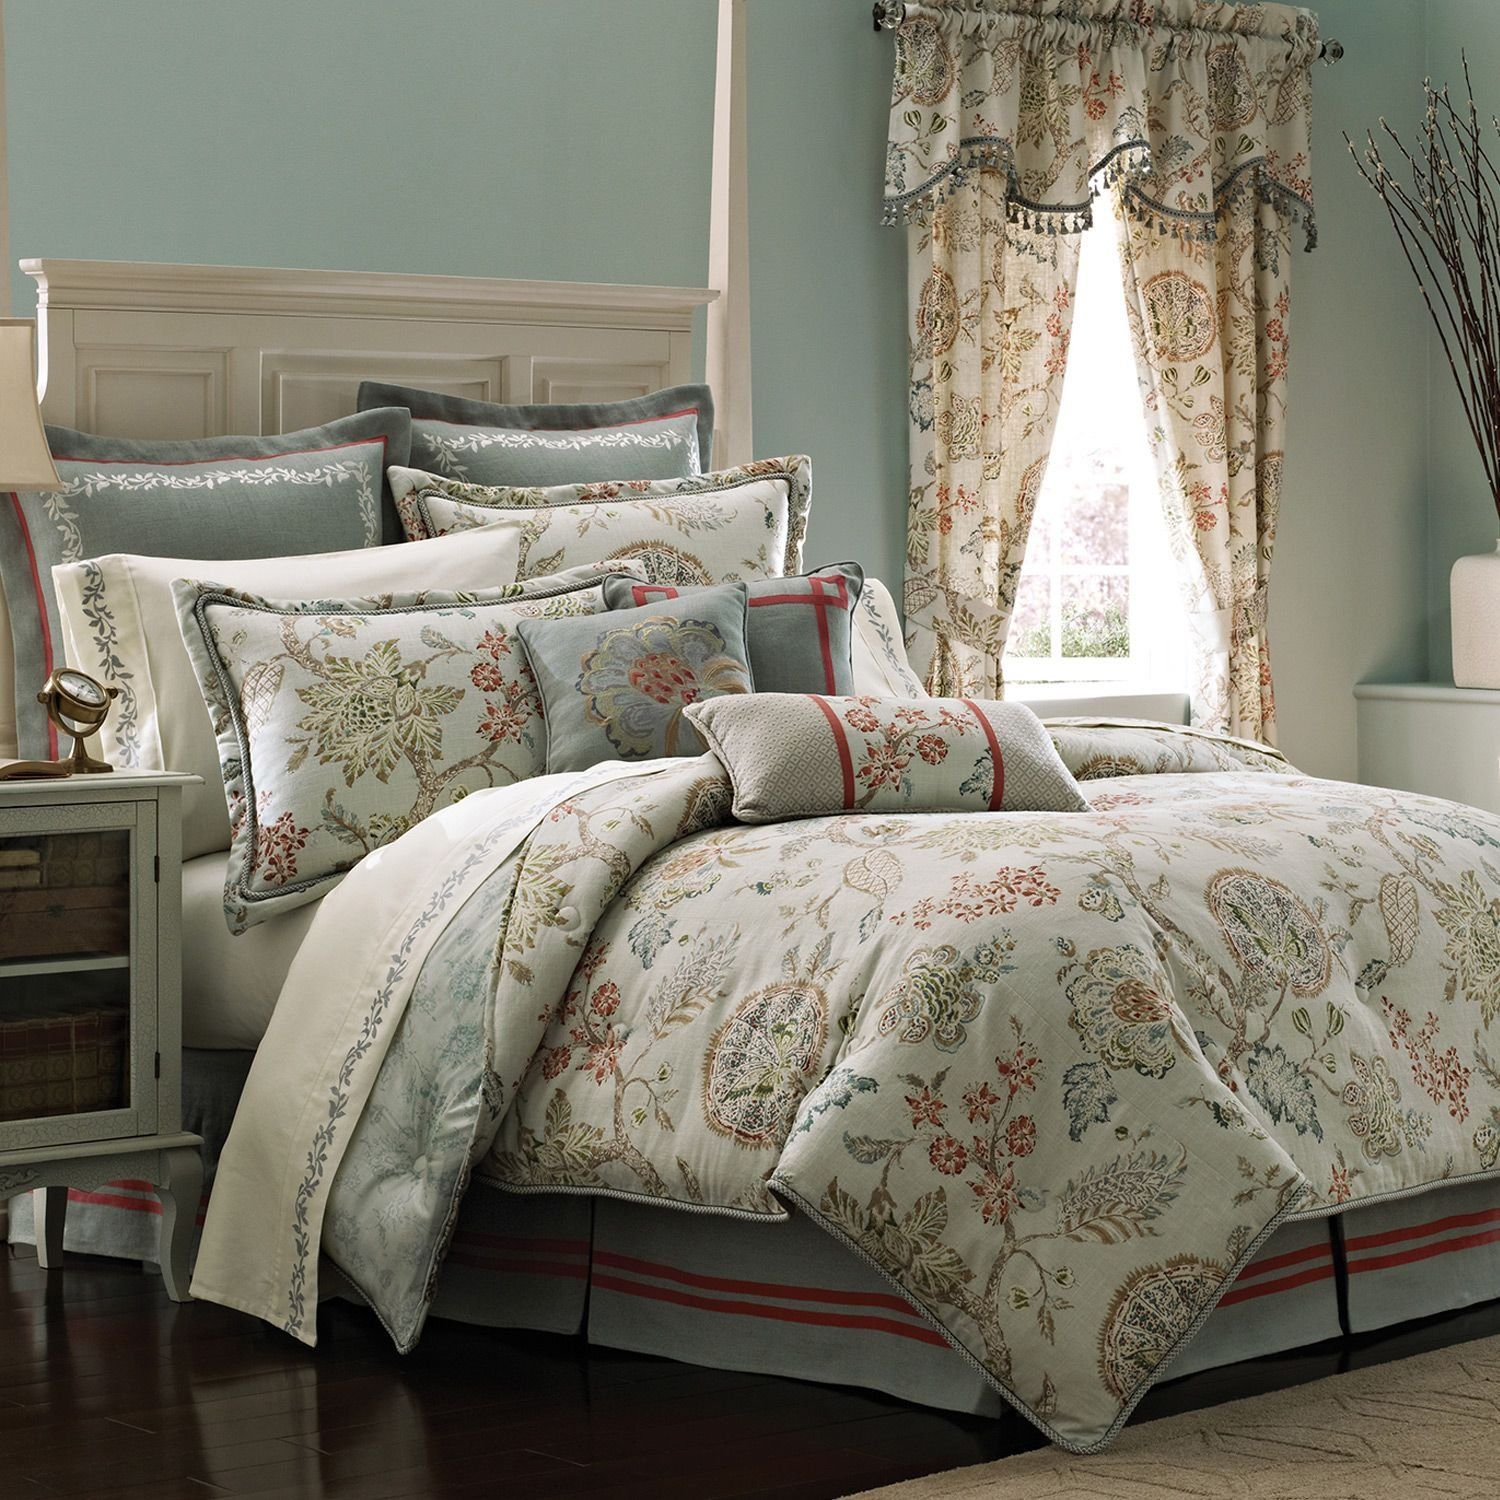 Comforter Sets With Curtains Amazon Croscill Retreat Comforter Set King Aqua Bedding